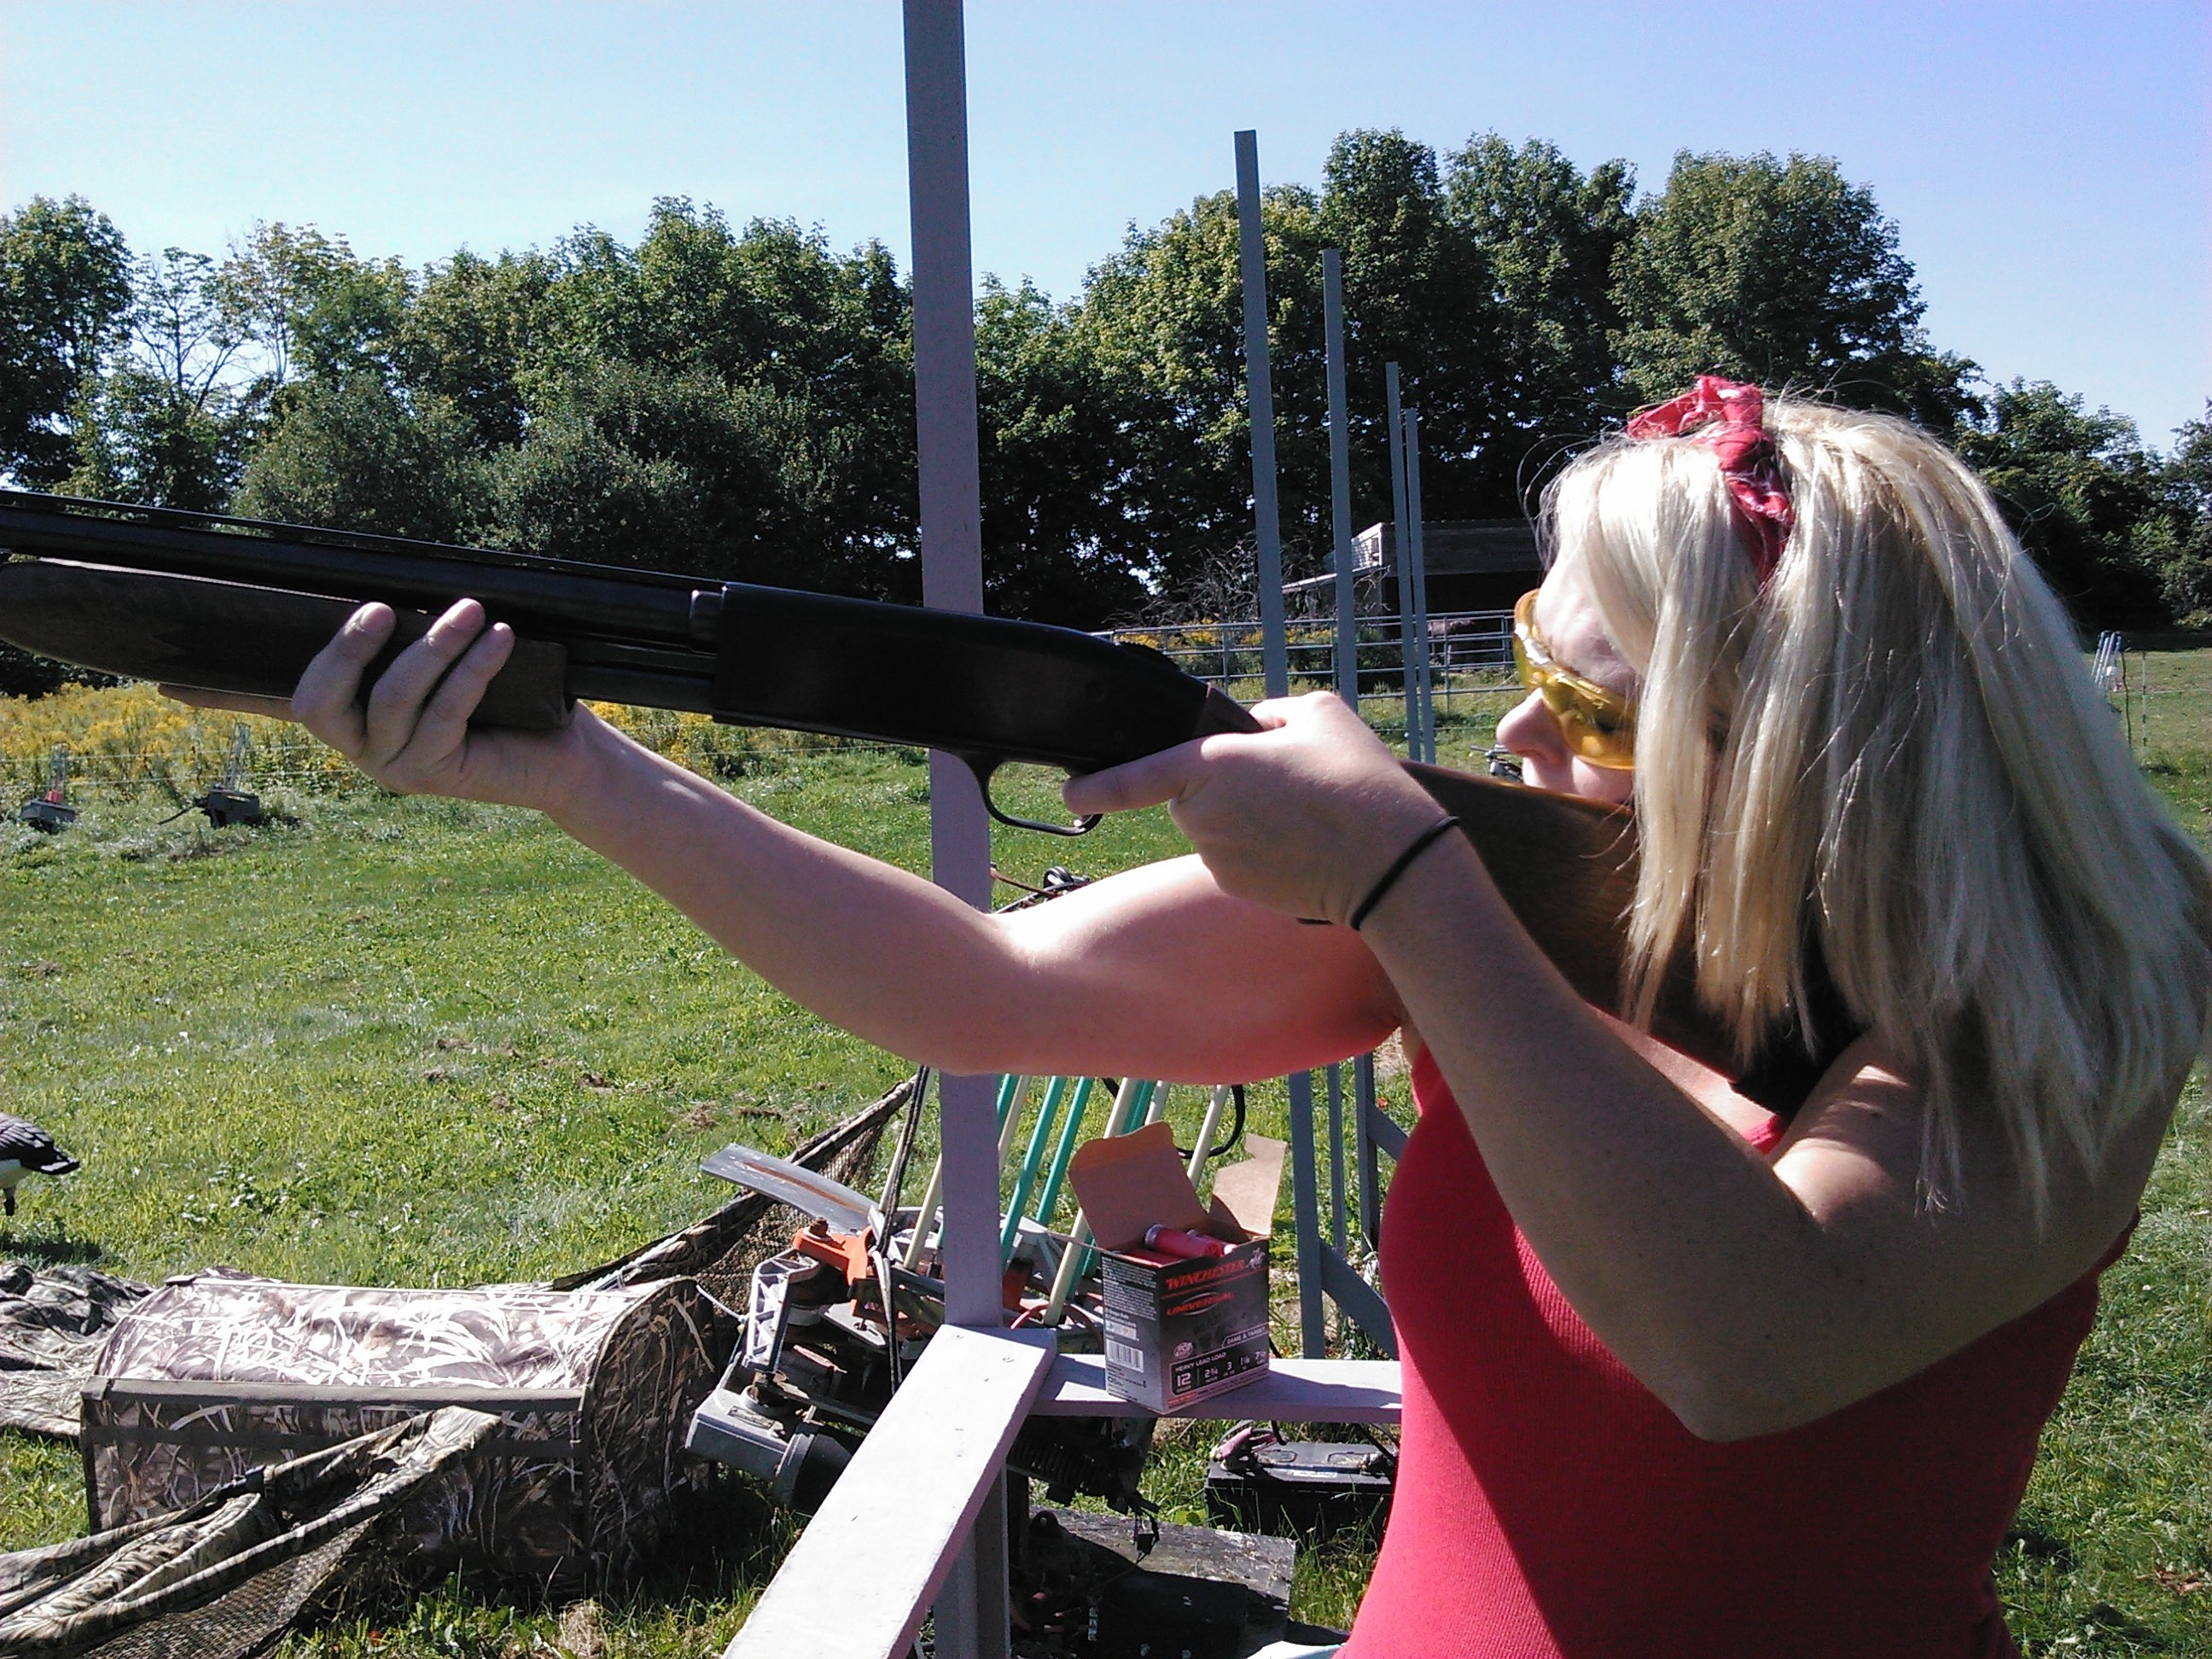 Learning to shoot sporting clays at Silverton Sporting Ranch